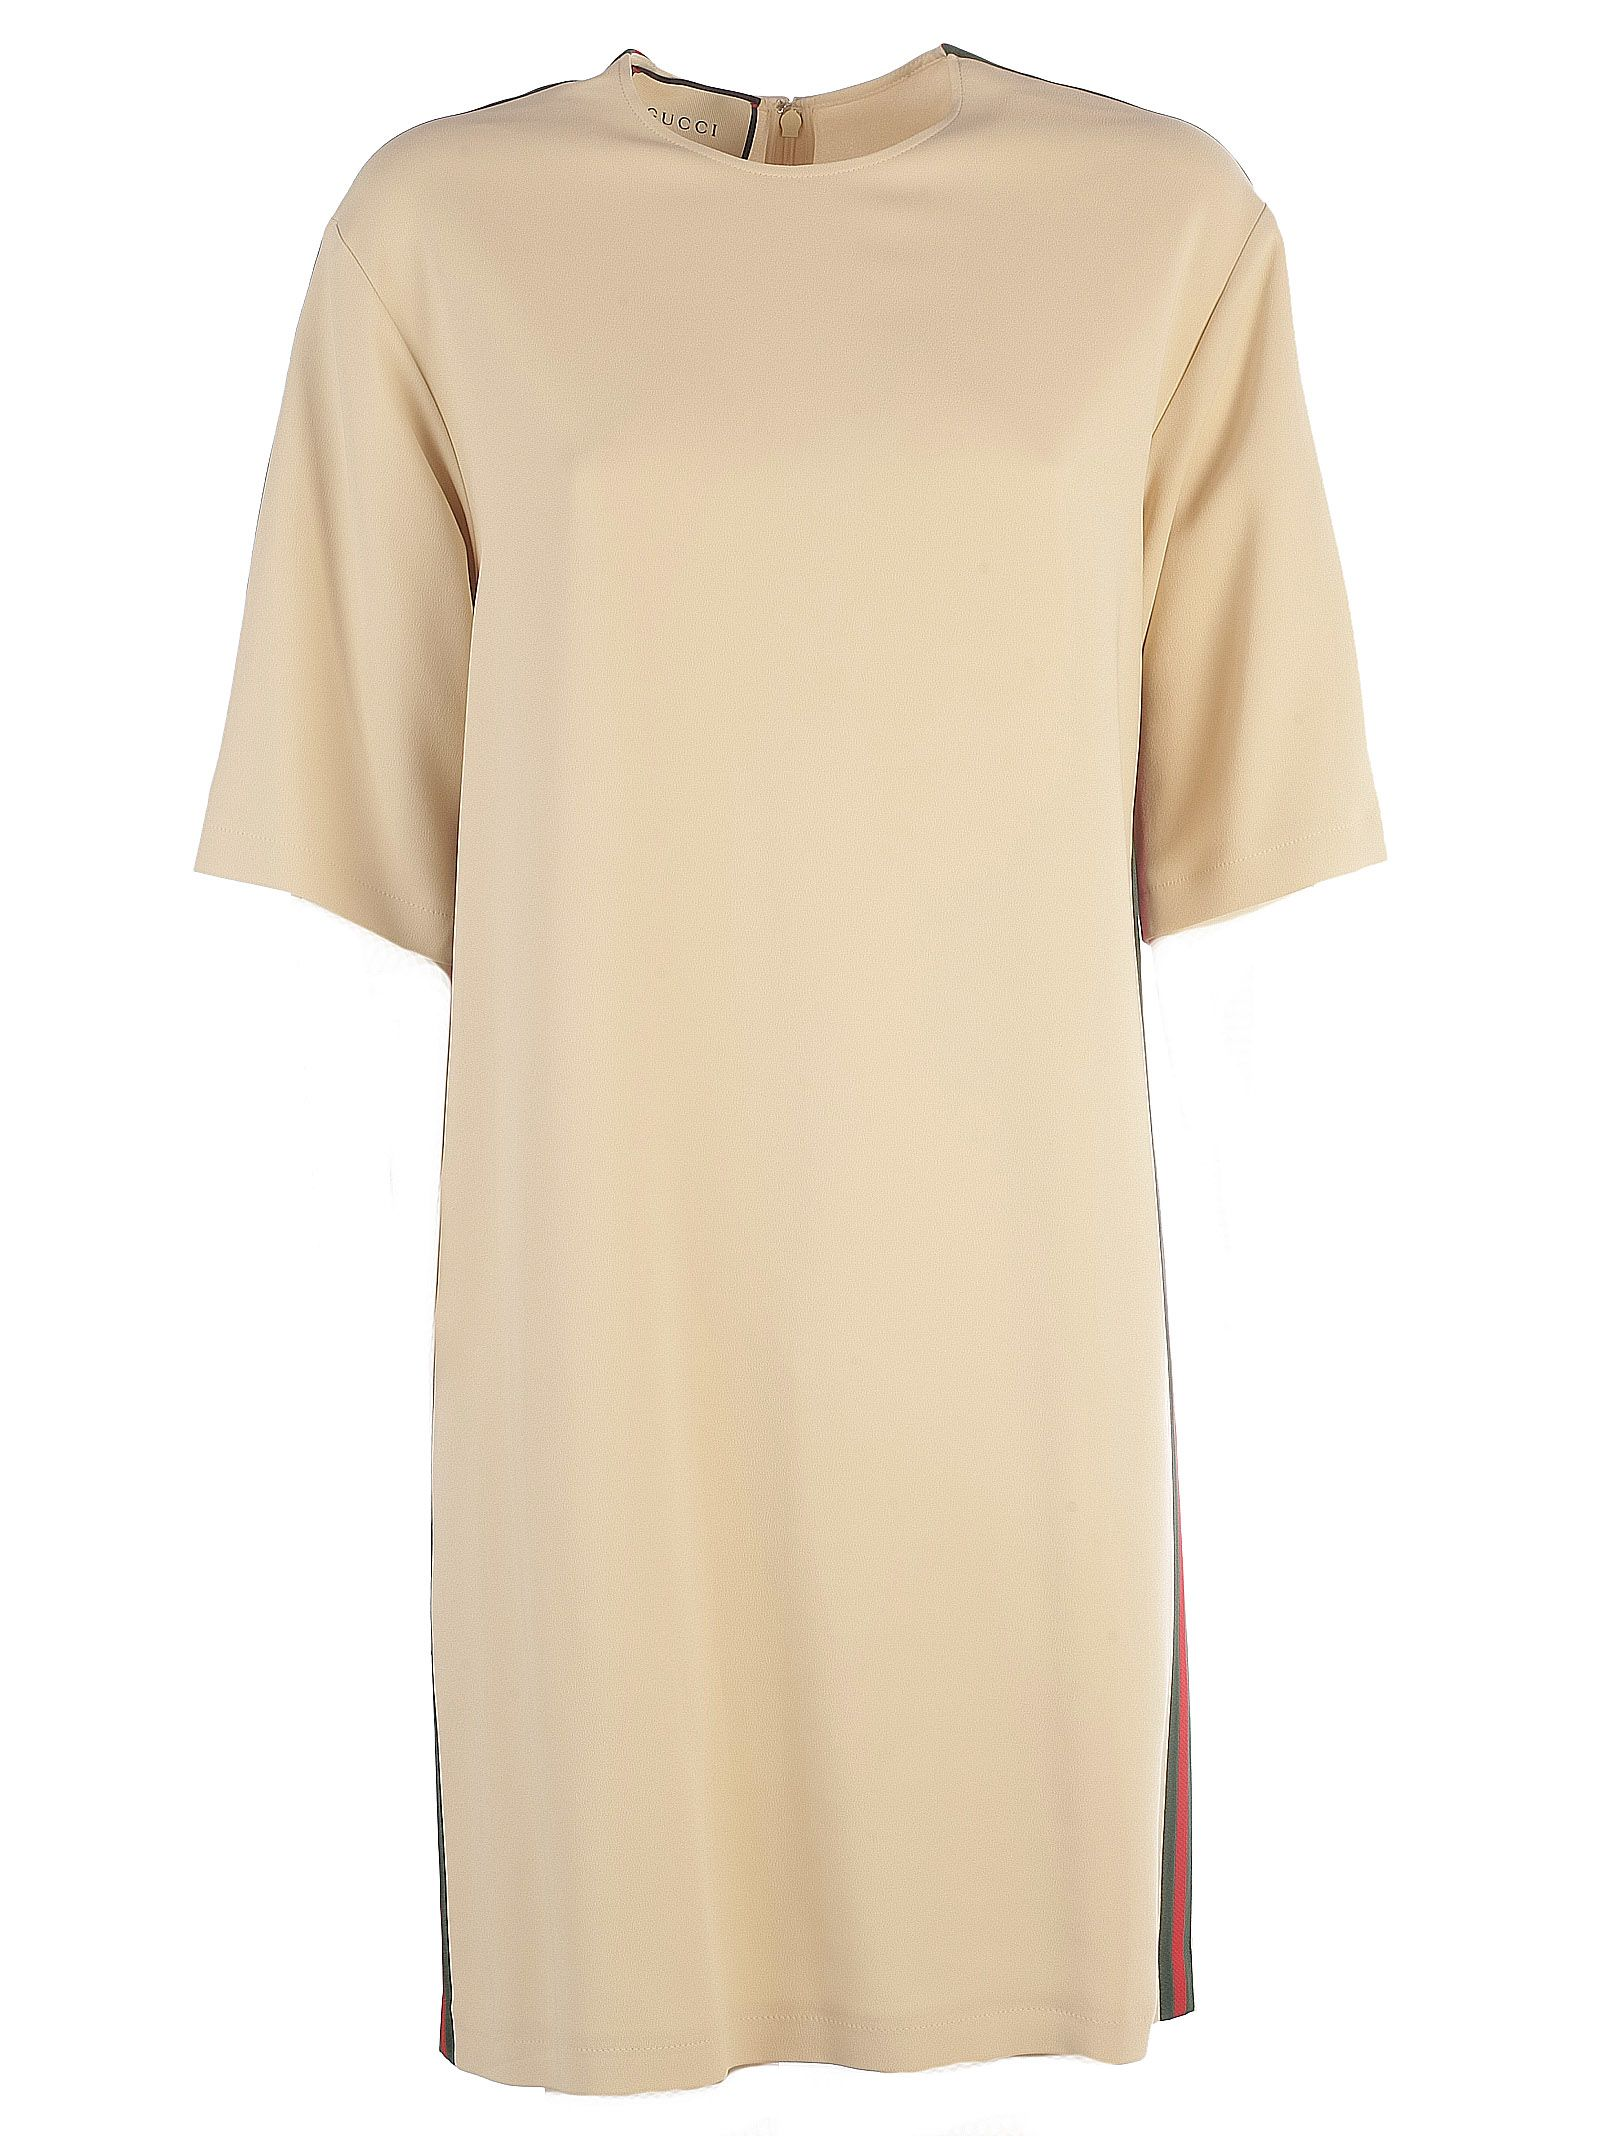 GUCCI WEB CONTRAST TUNIC DRESS